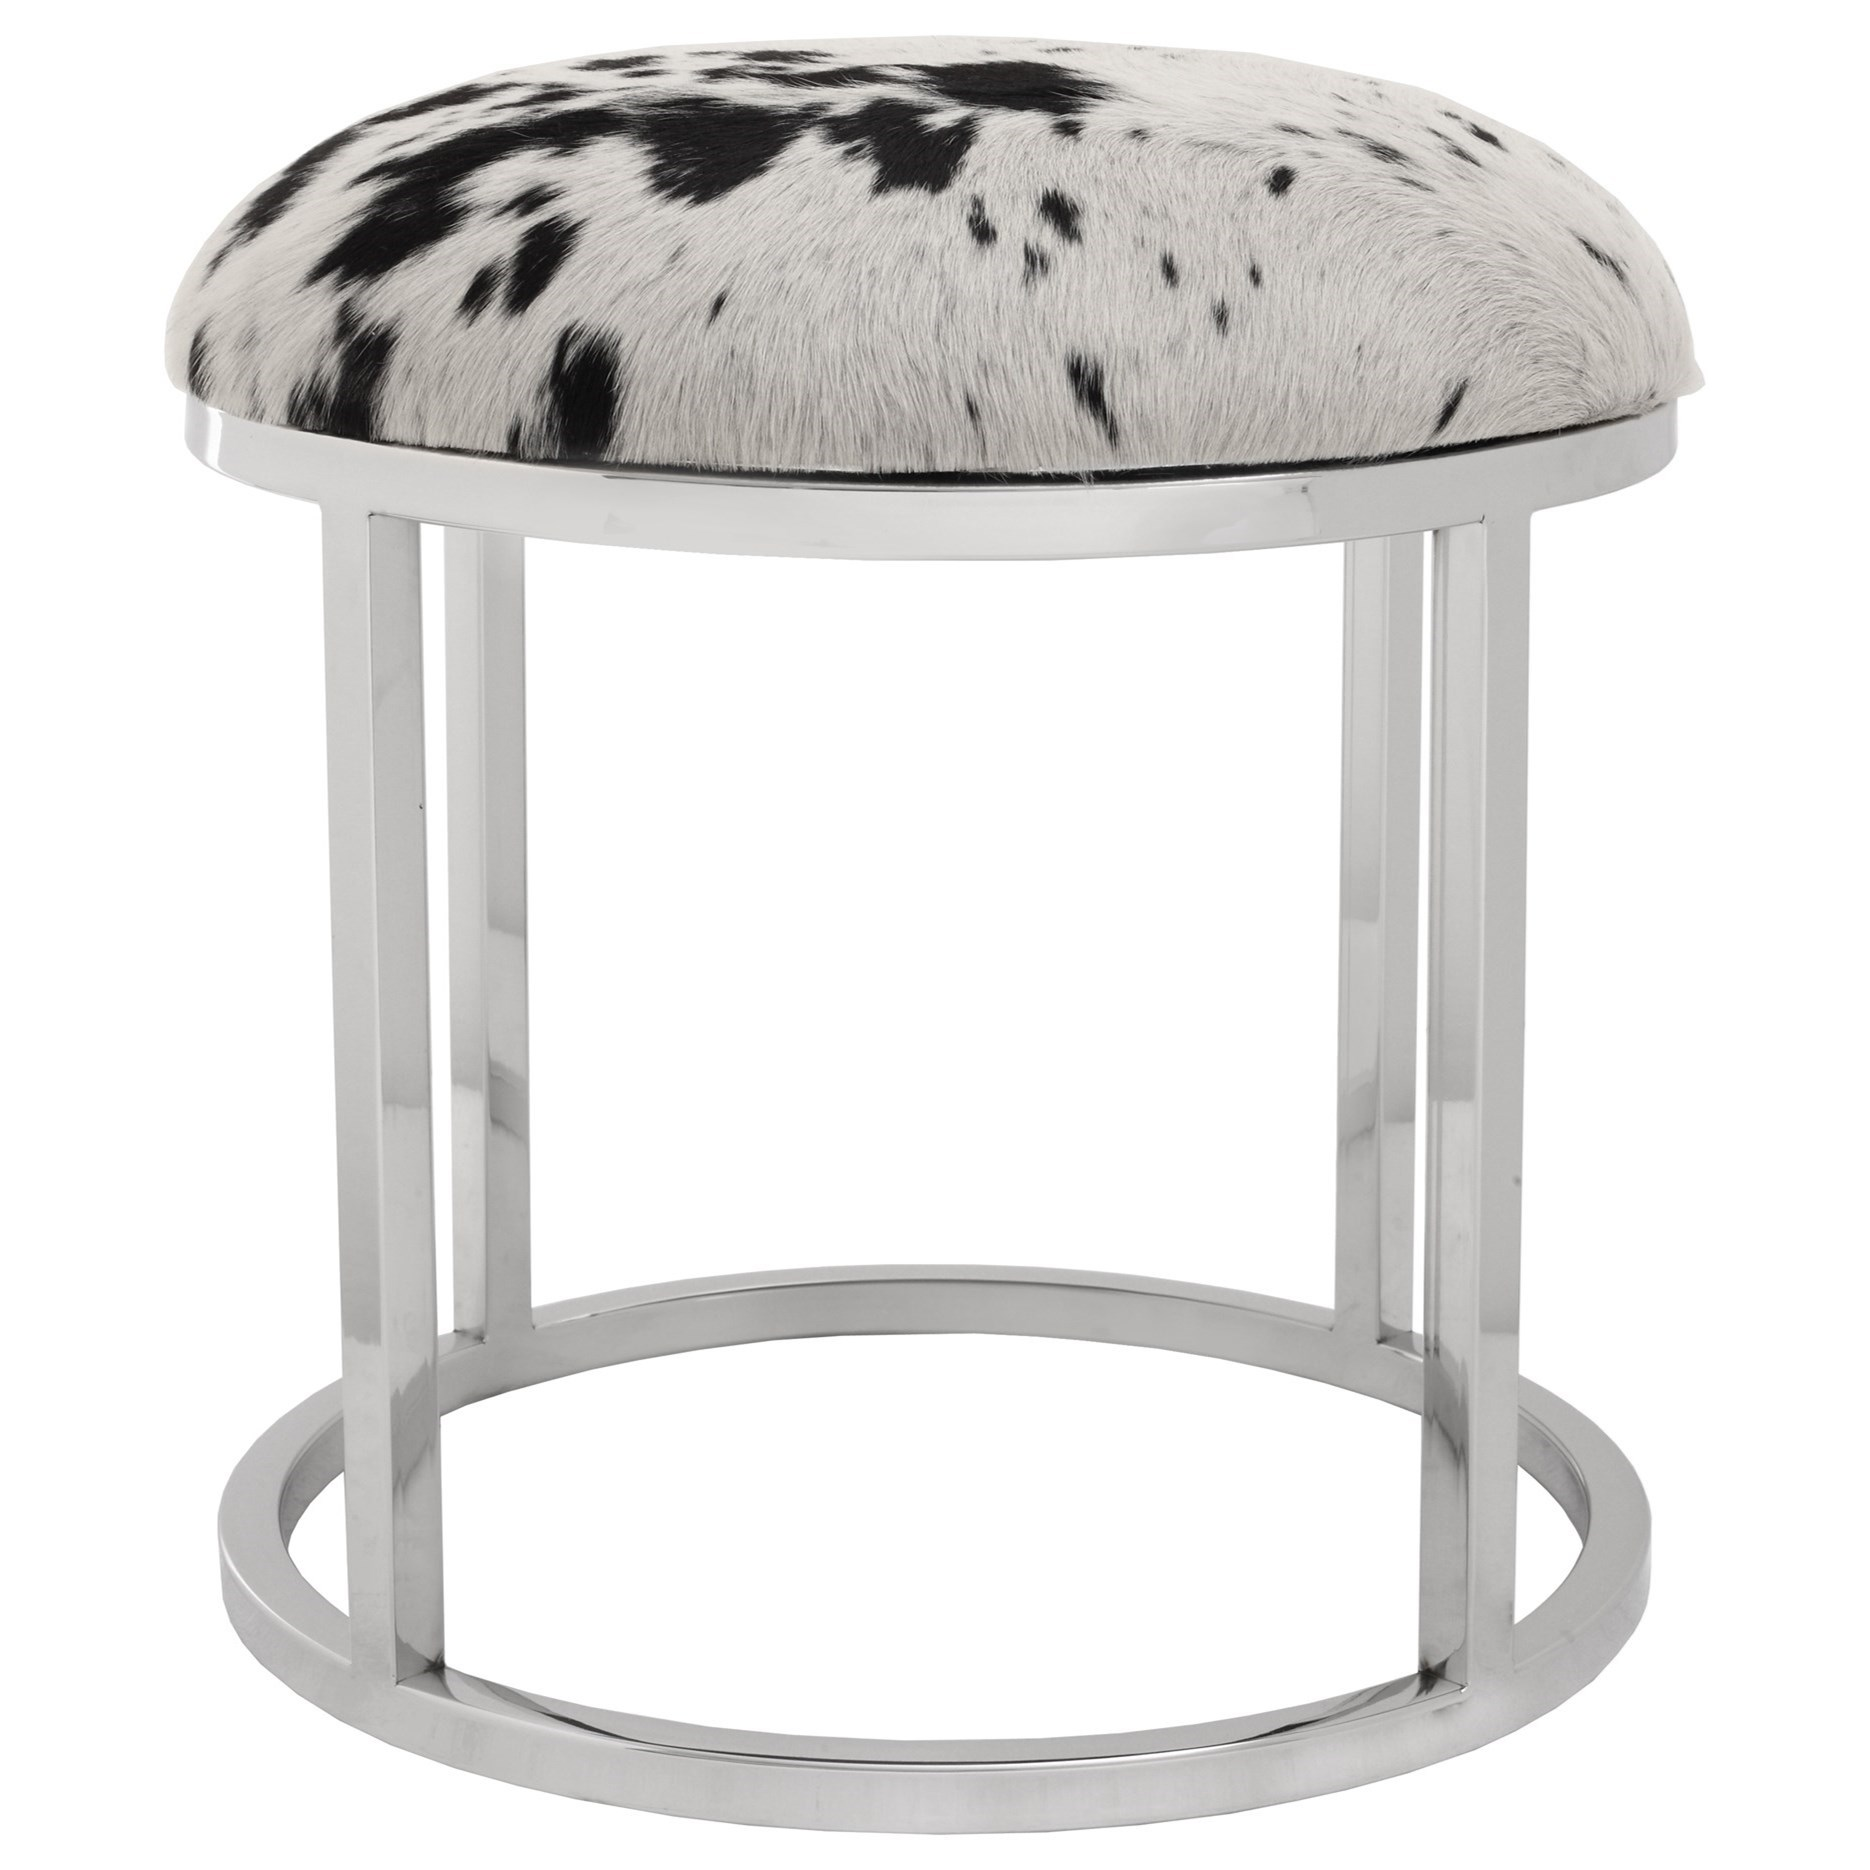 Appa Cowhide Round Stool at Williams & Kay